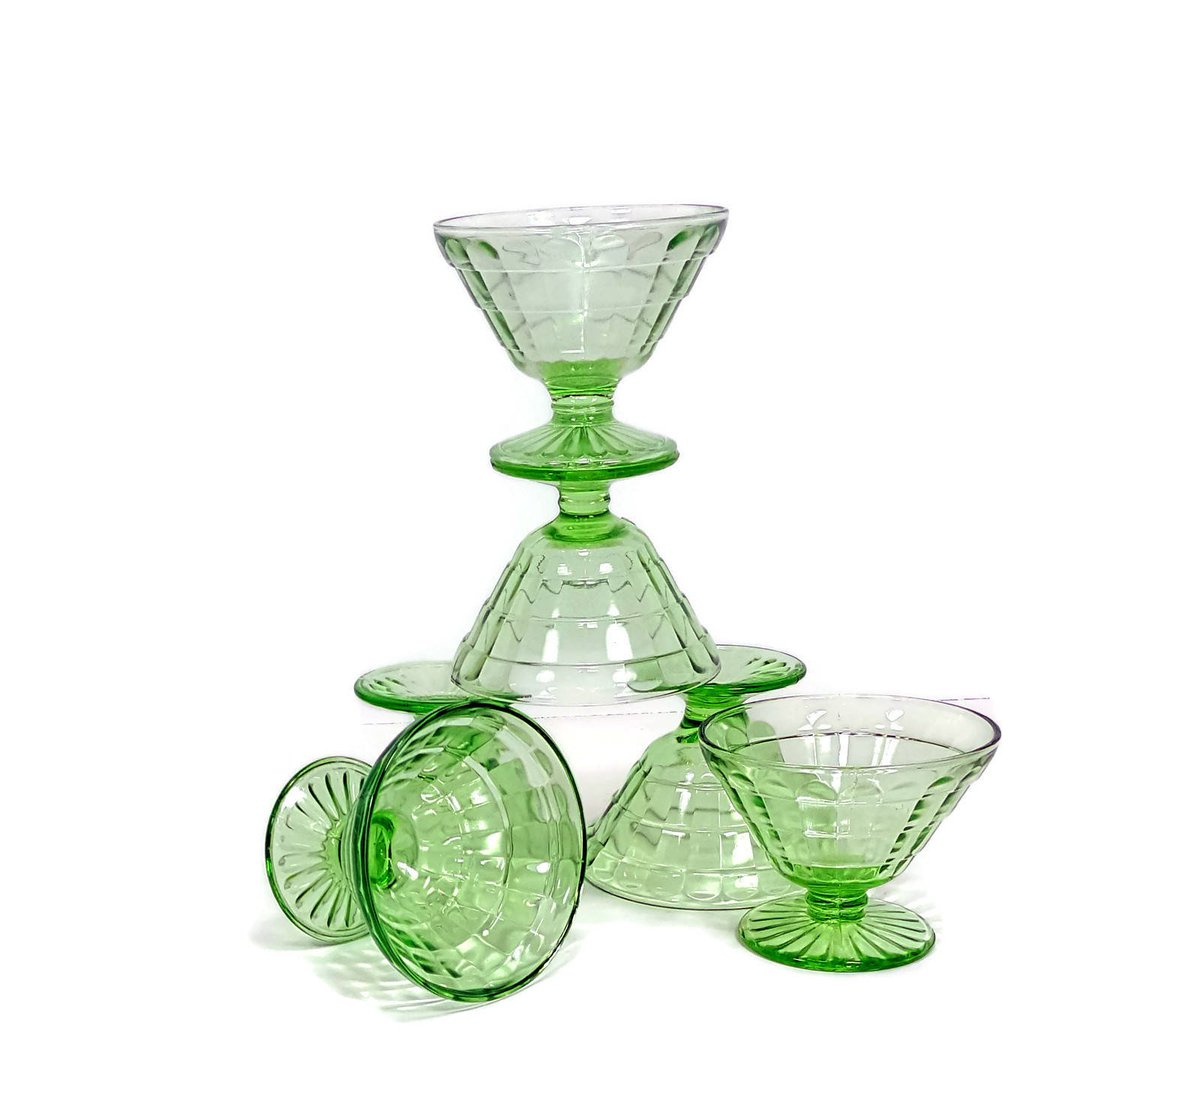 469b5bc0fda6 GREEN DEPRESSION GLASS Block Optic Dessert Dishes Set of 6 Footed Vaseline  Green Glass Dishes Hostess Gift Mothers Day Gift https   etsy.me 2p8eSzZ   kitsch ...